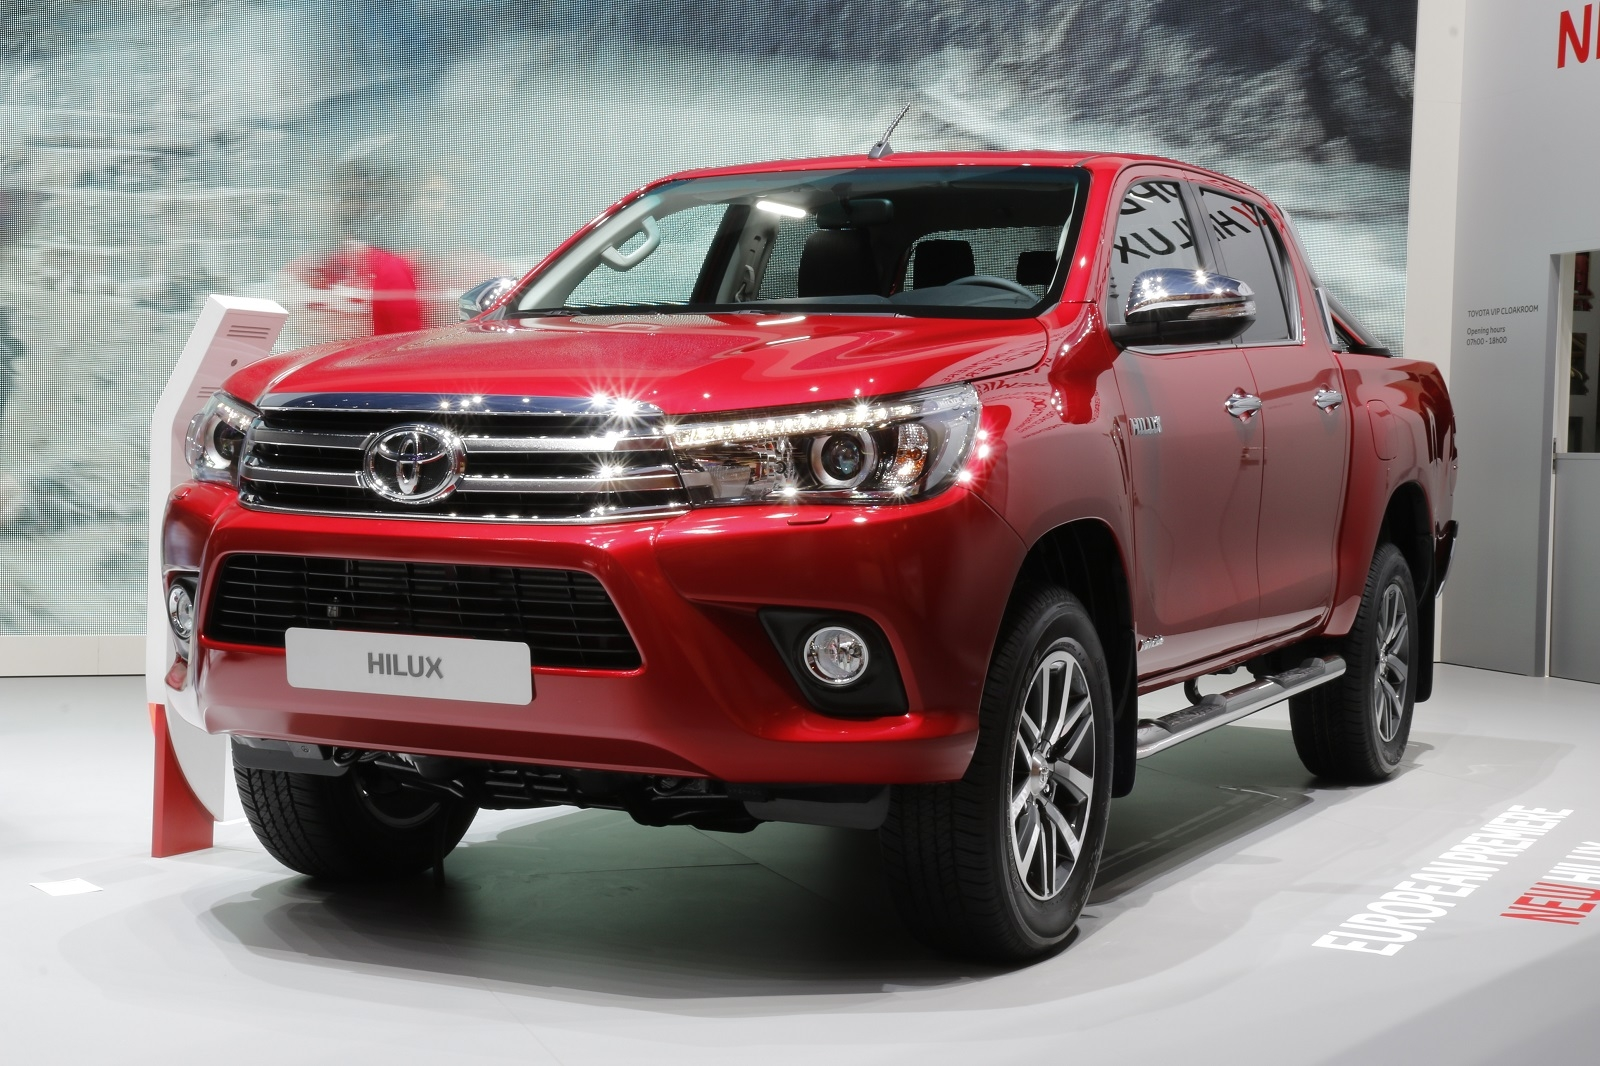 Nouveau Toyota Hilux L Immortel Vid 233 O En Direct Du Salon De Gen 232 Ve 2016